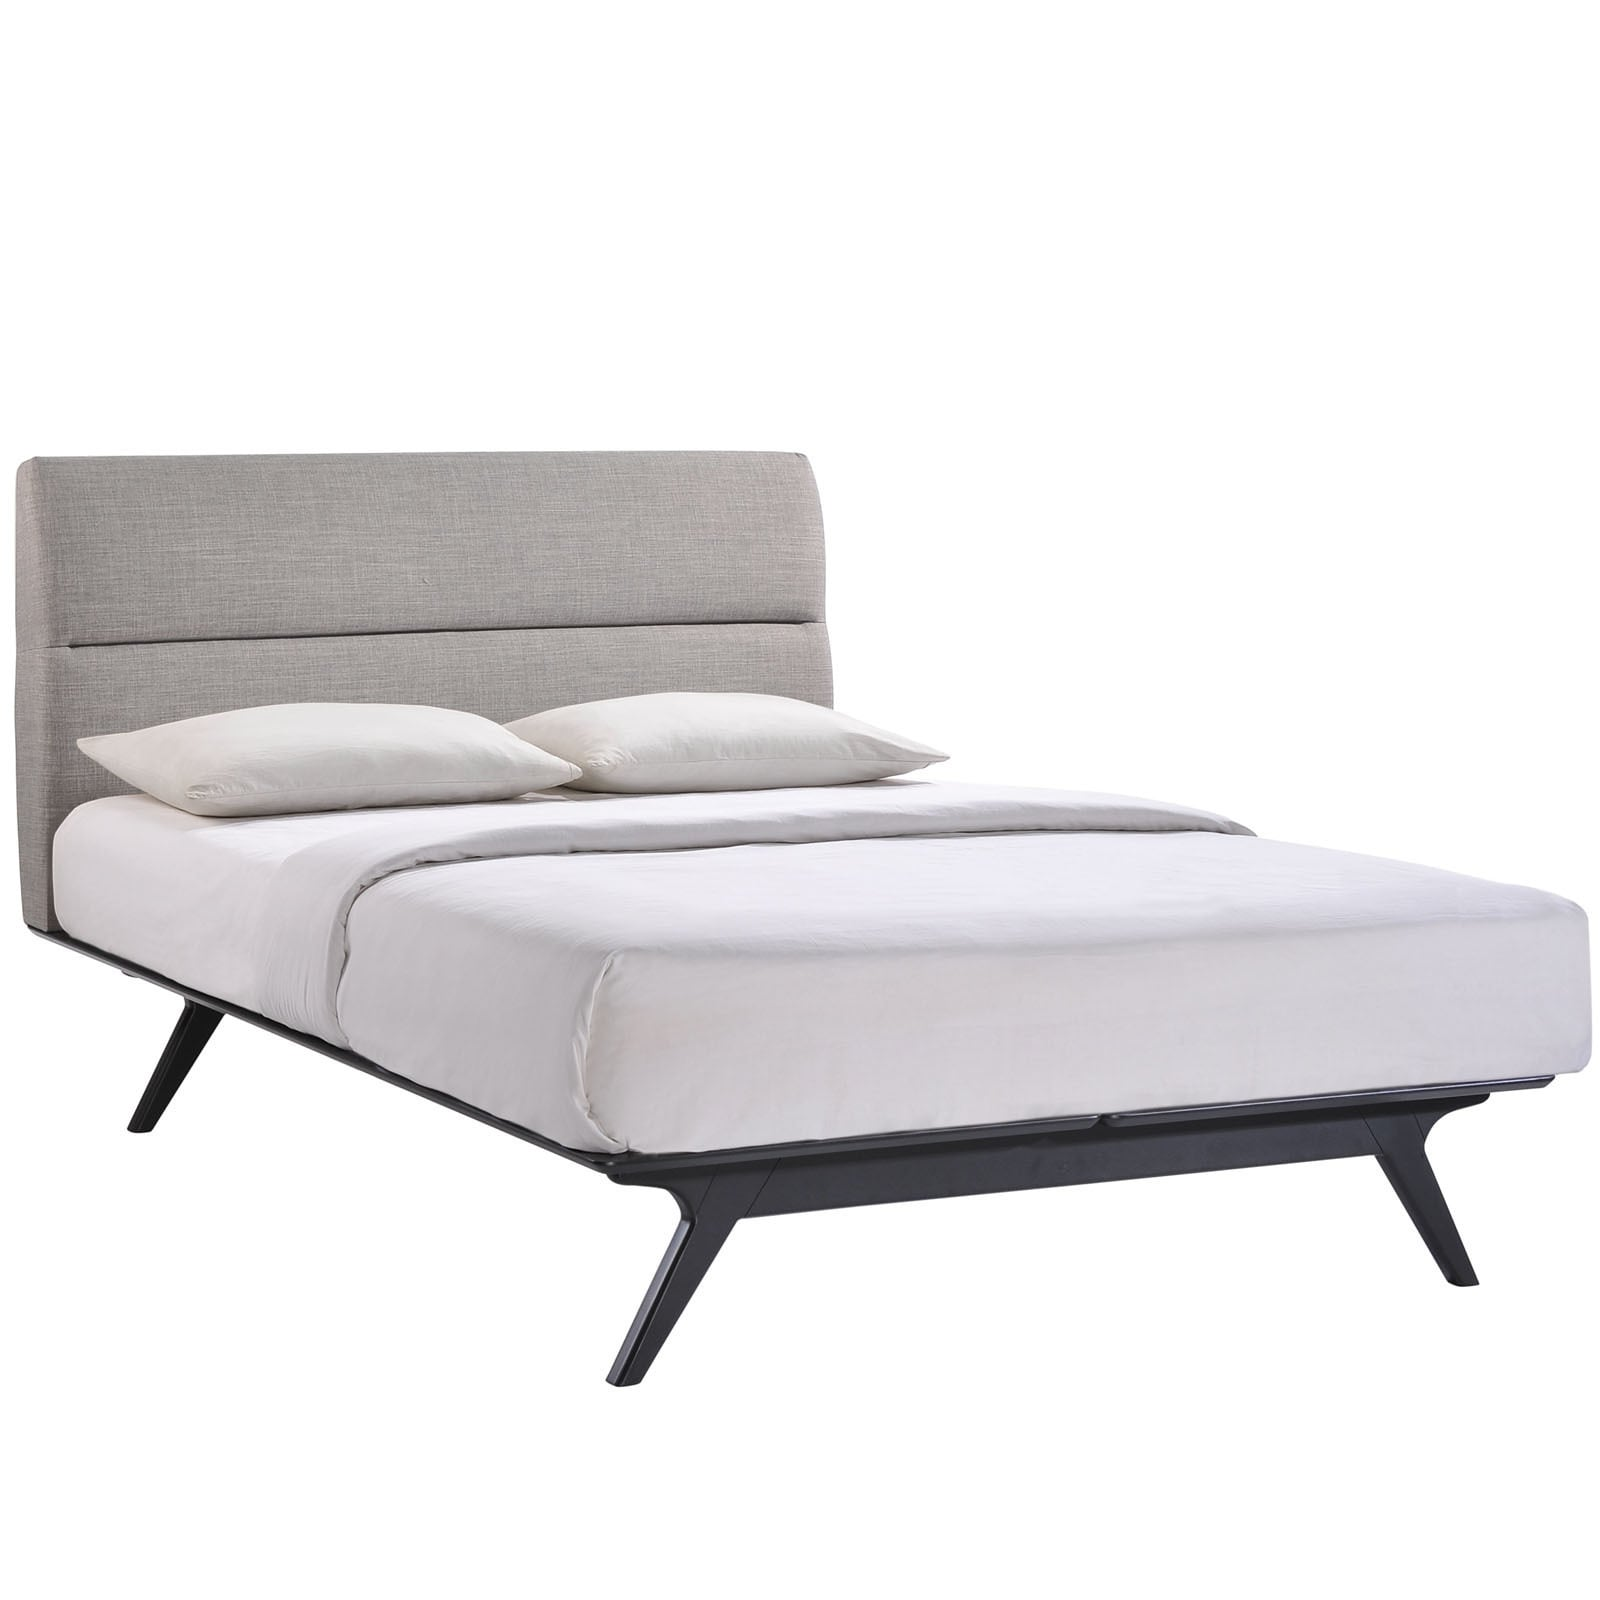 Shop Addison Queen-size Platform Bed Frame - On Sale - Free Shipping ...